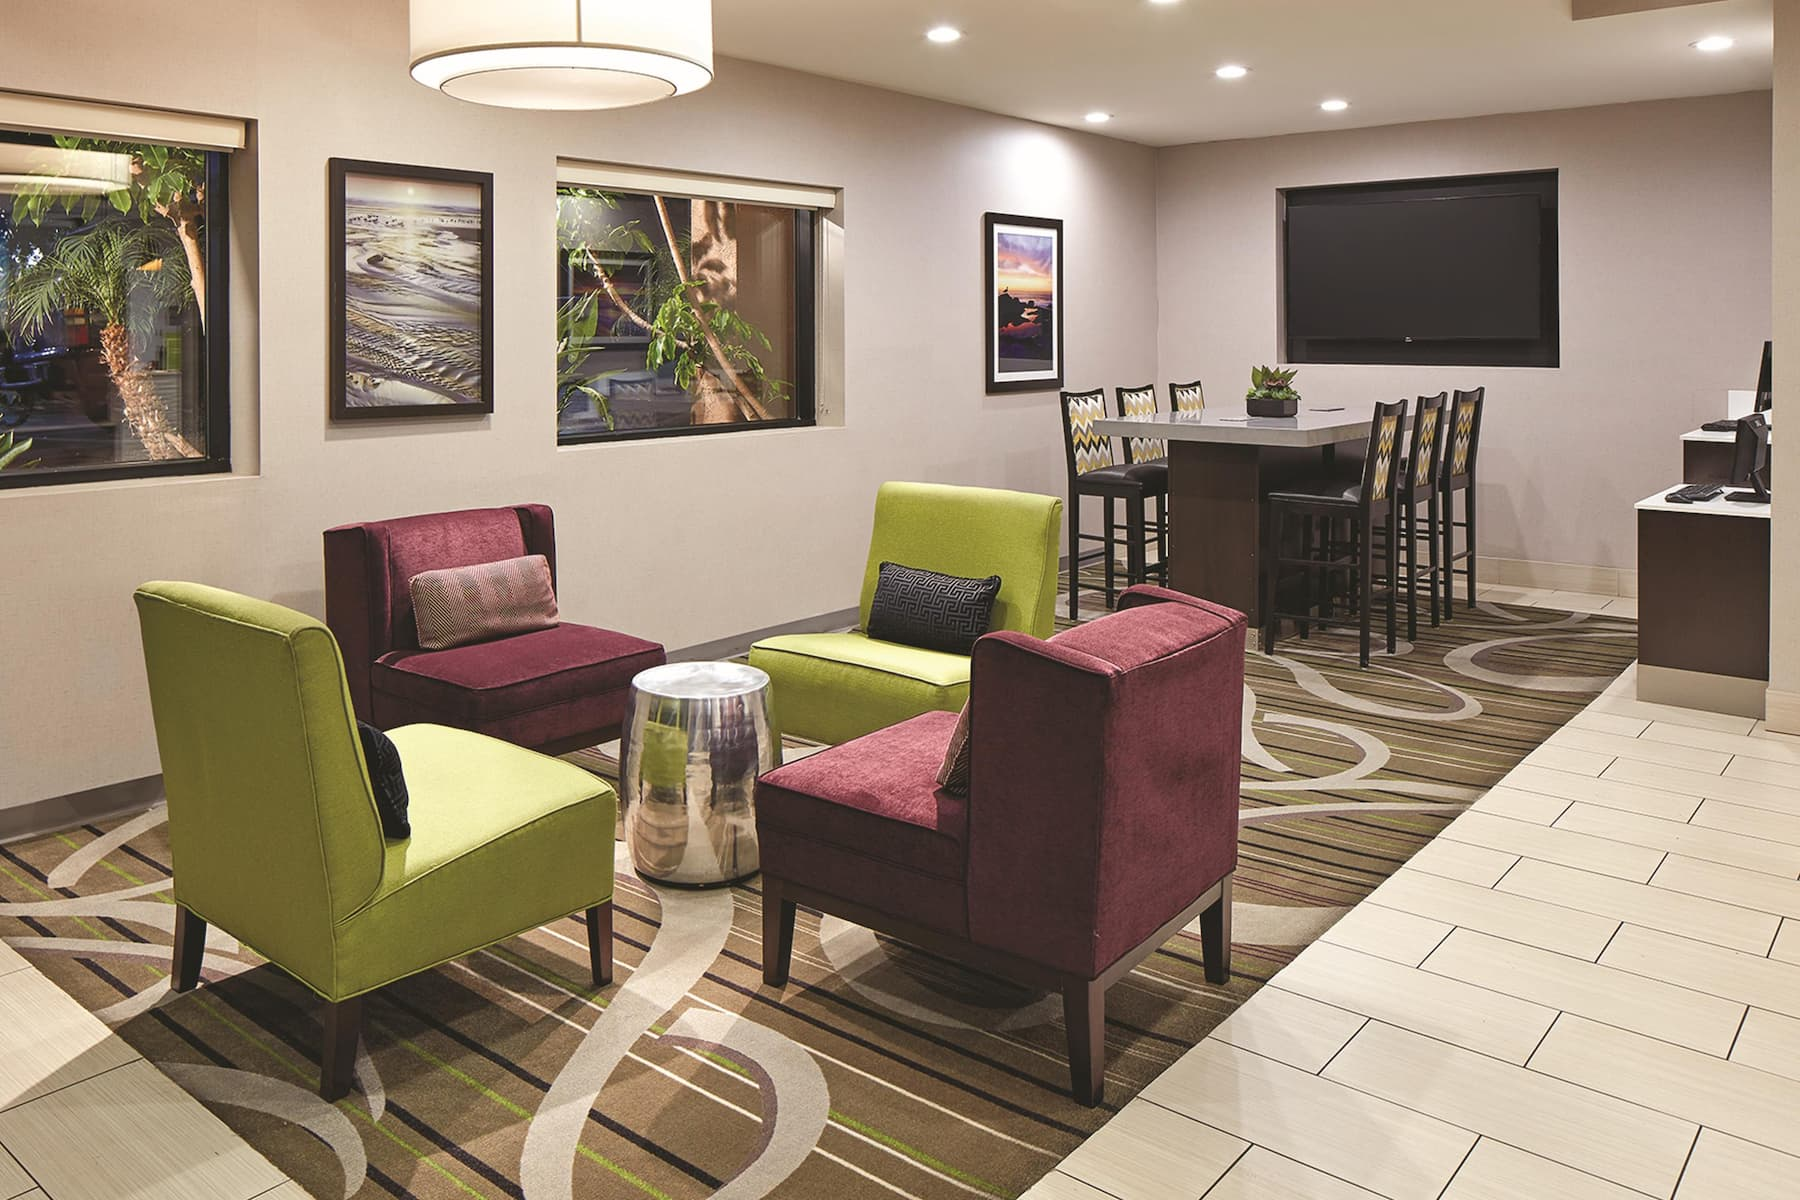 La Quinta Inn & Suites by Wyndham San Diego SeaWorld/Zoo hotel lobby in San Diego, California